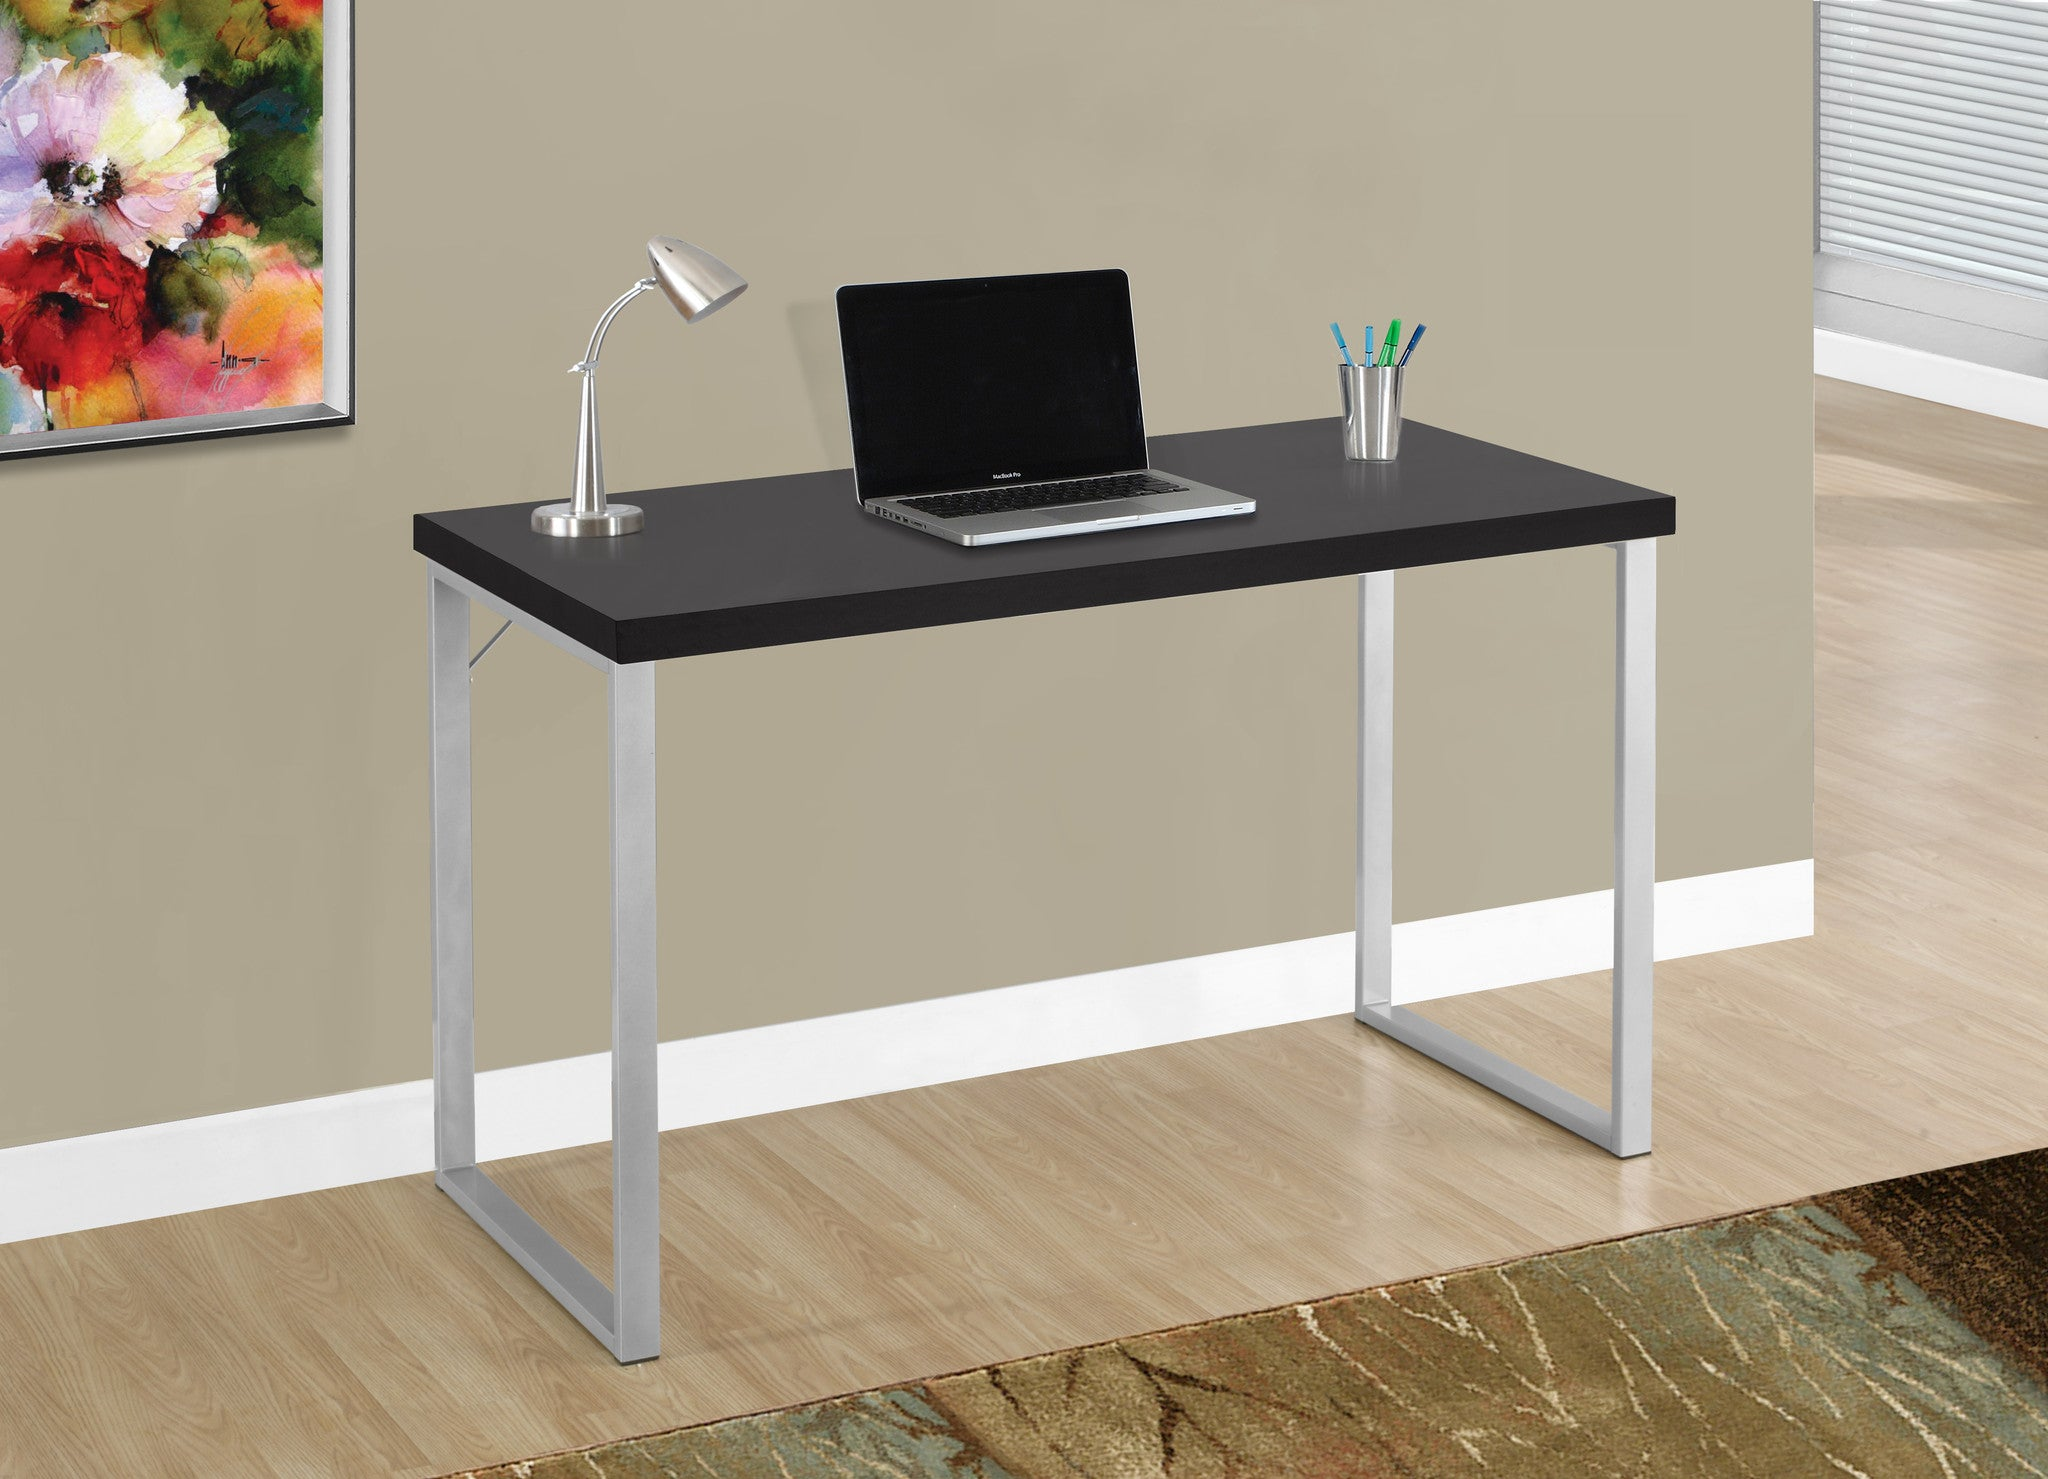 48 Quot L Computer Desk Silver Metal Legs The Office